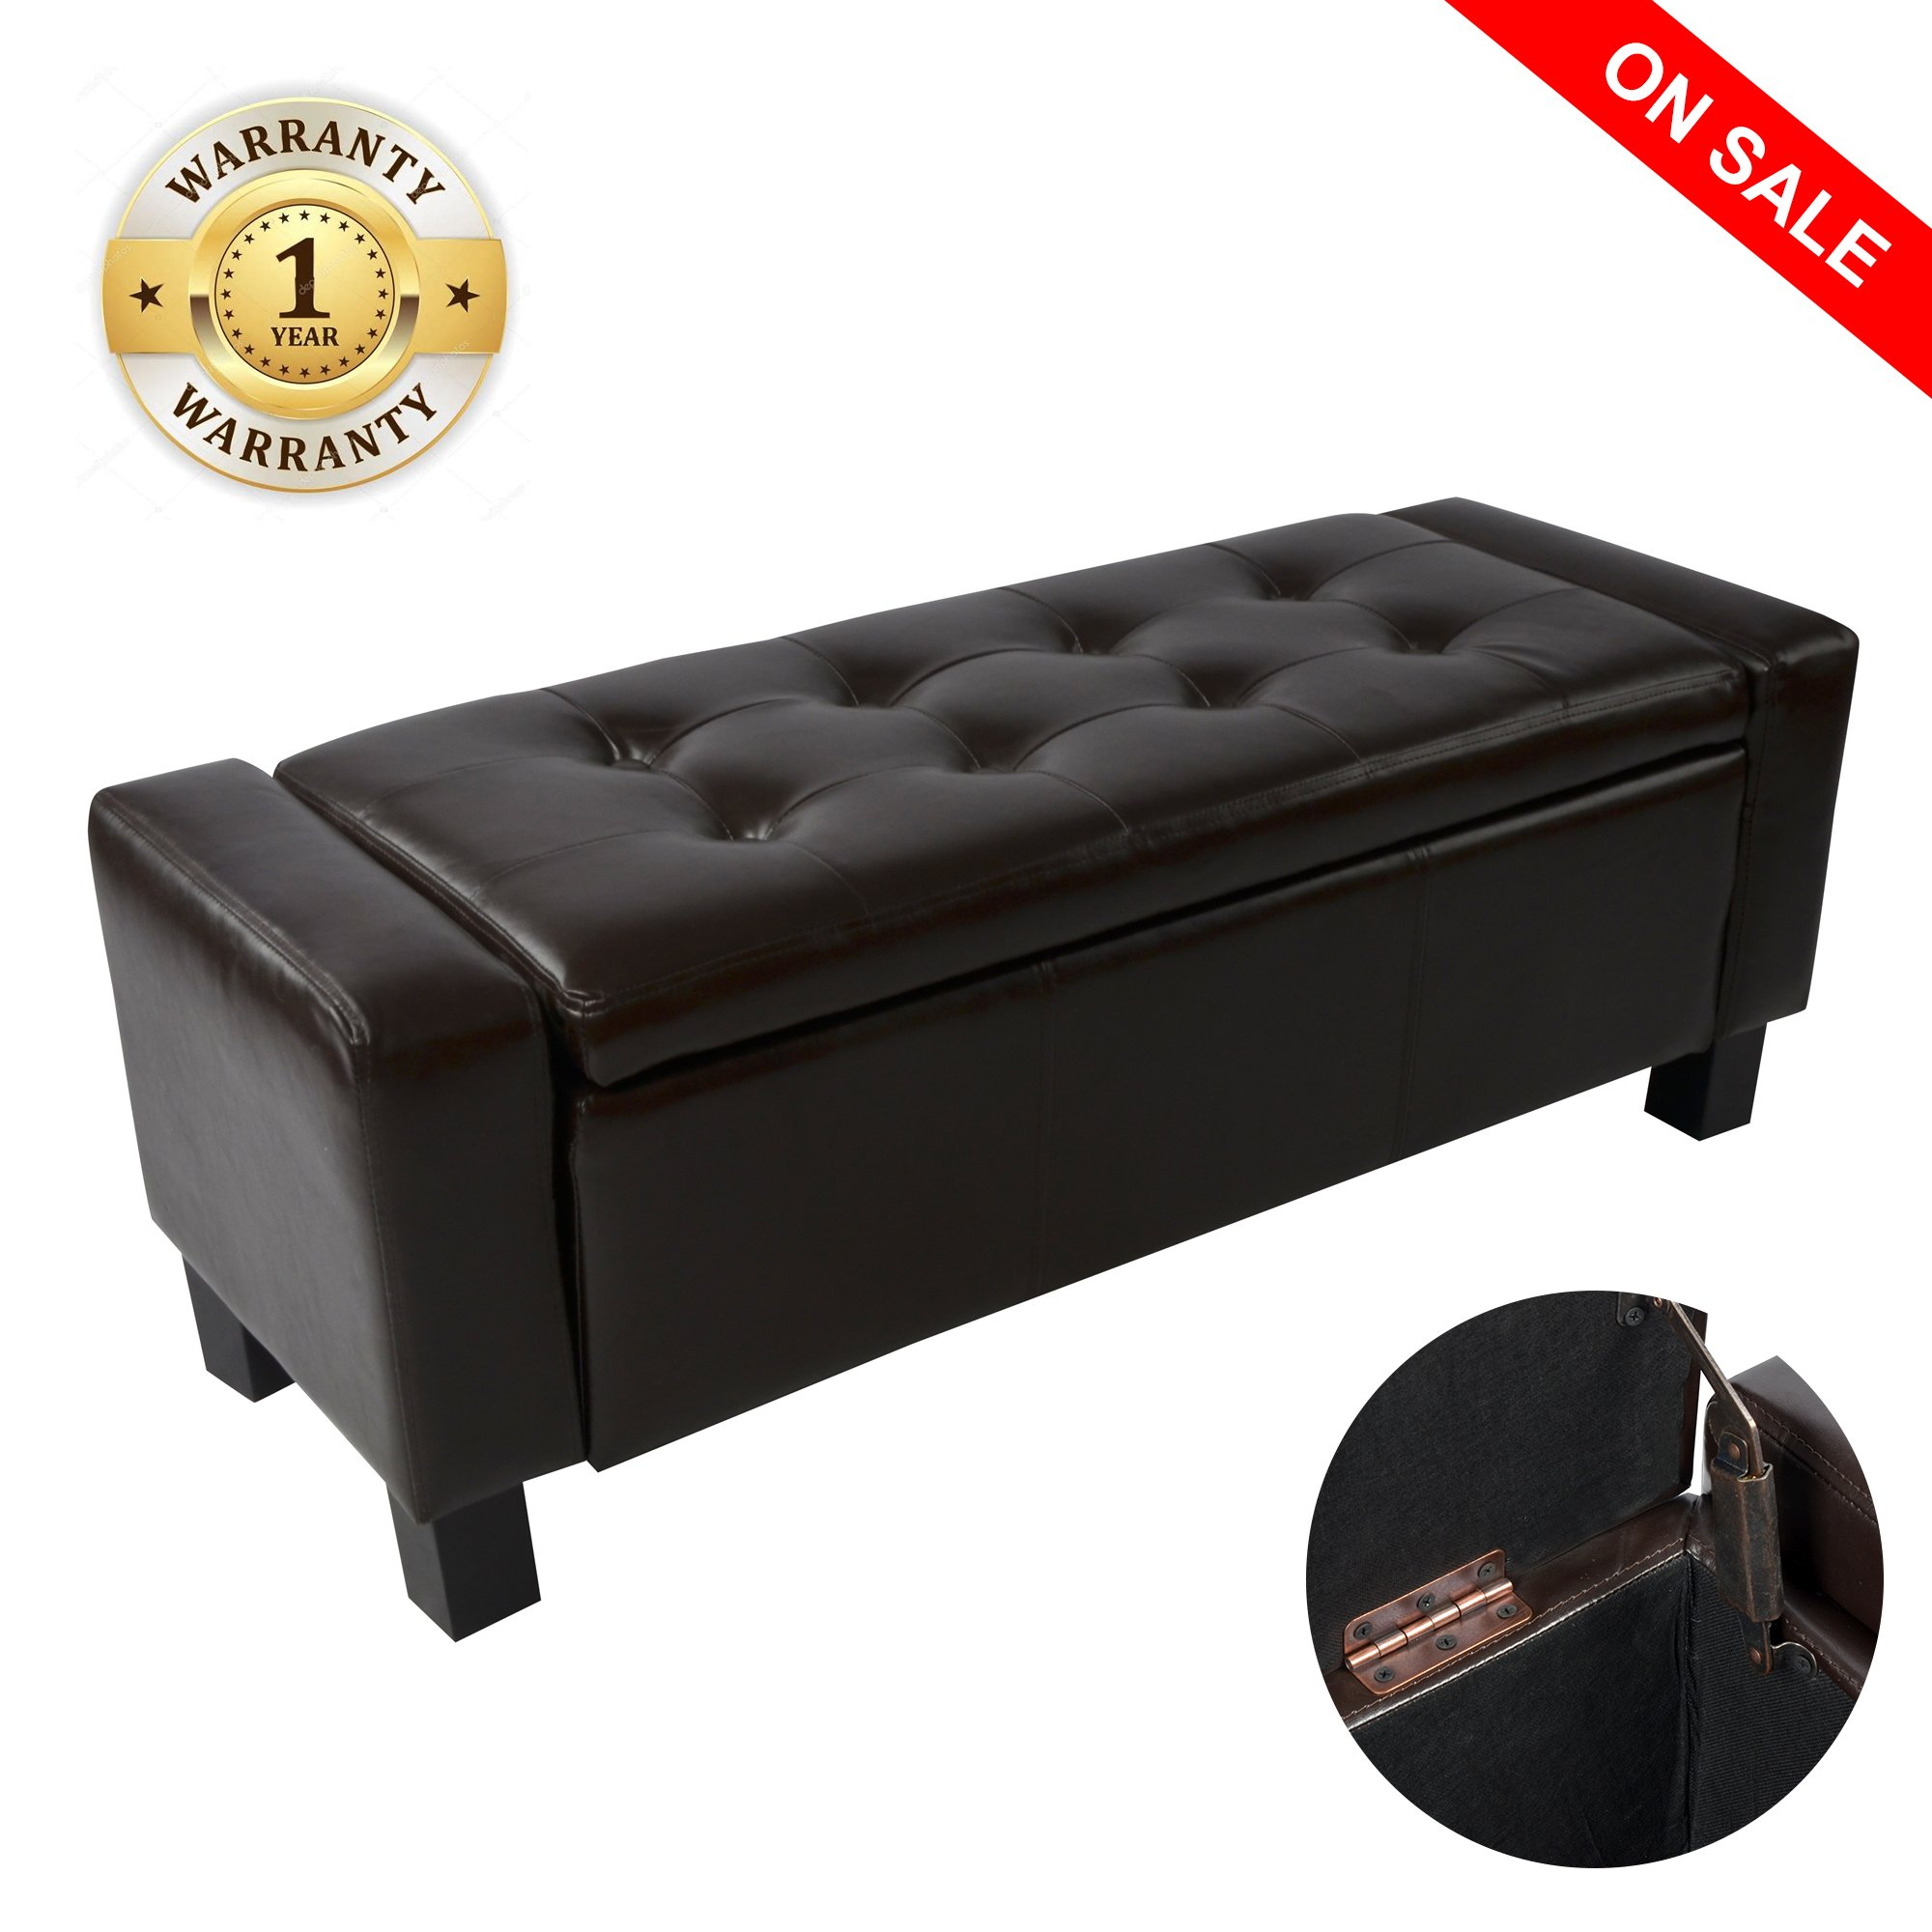 windaze Ottoman Storage Bench 42'' Tufted Footrest Rectangular Faux Leather(Brown)